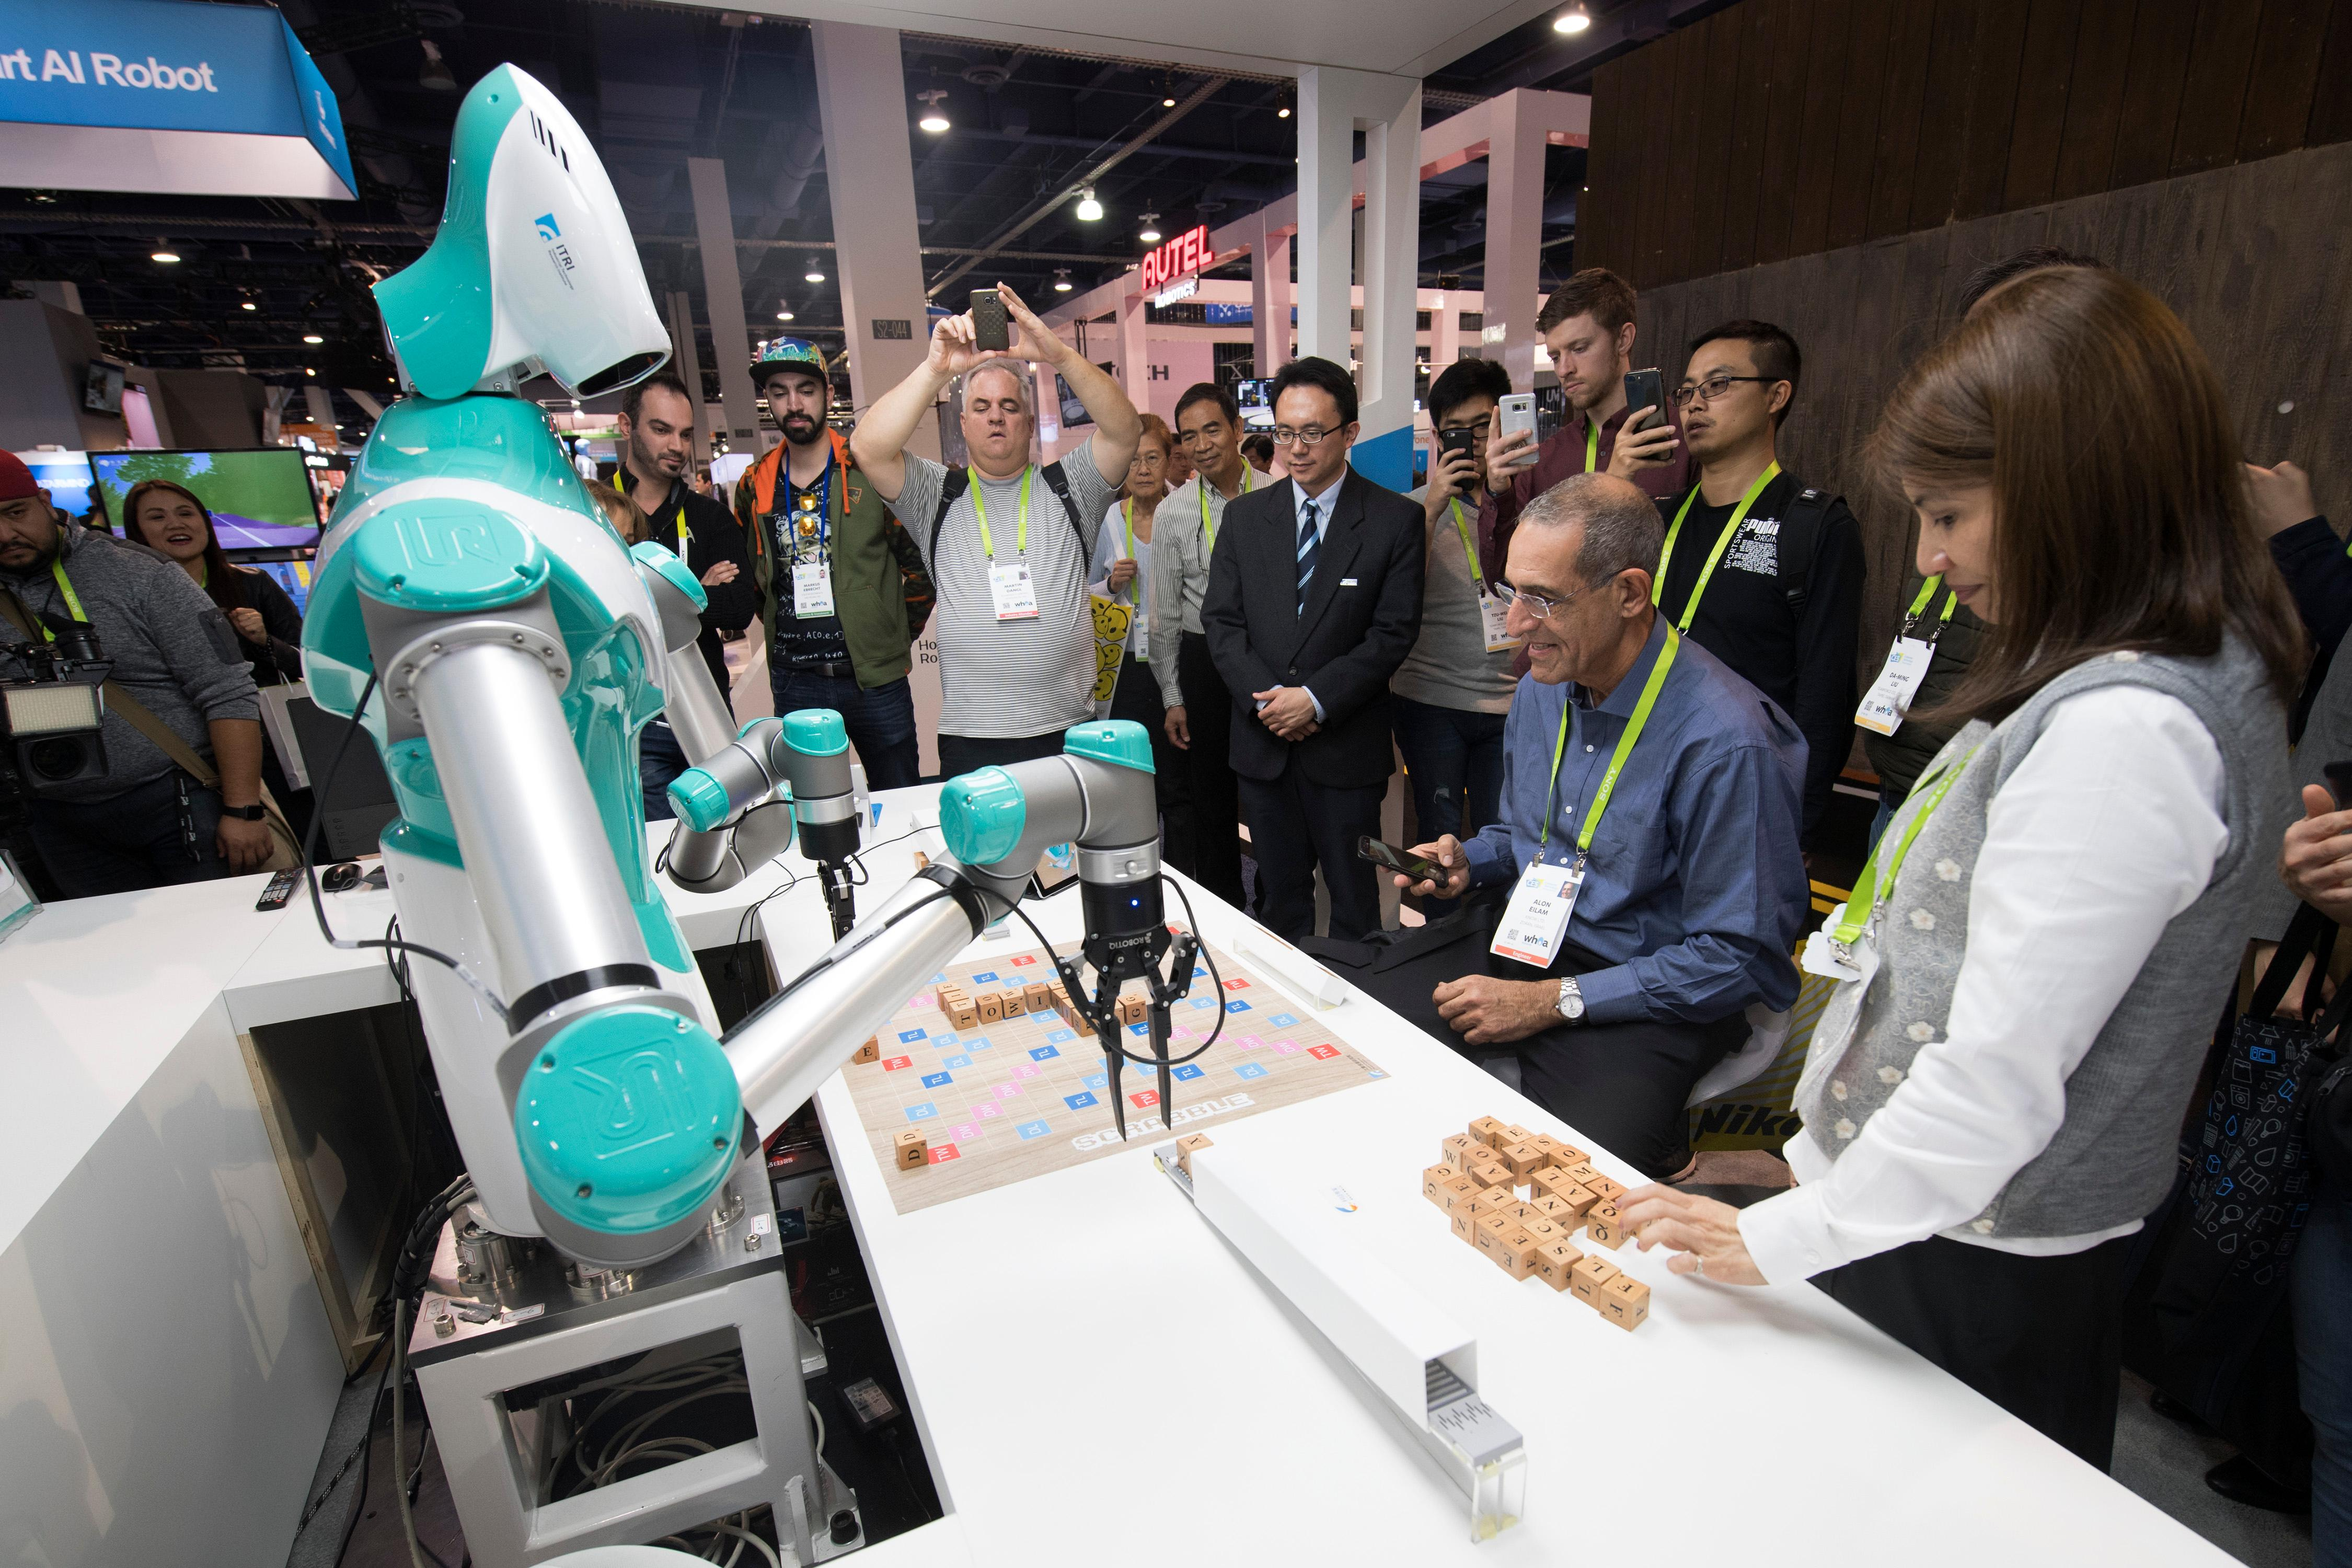 Elon Eilam plays Scrabble against a robot from Industrial Technology Research Institute during the second day of CES Wednesday, January 10, 2018, at the Las Vegas Convention Center. CREDIT: Sam Morris/Las Vegas News Bureau